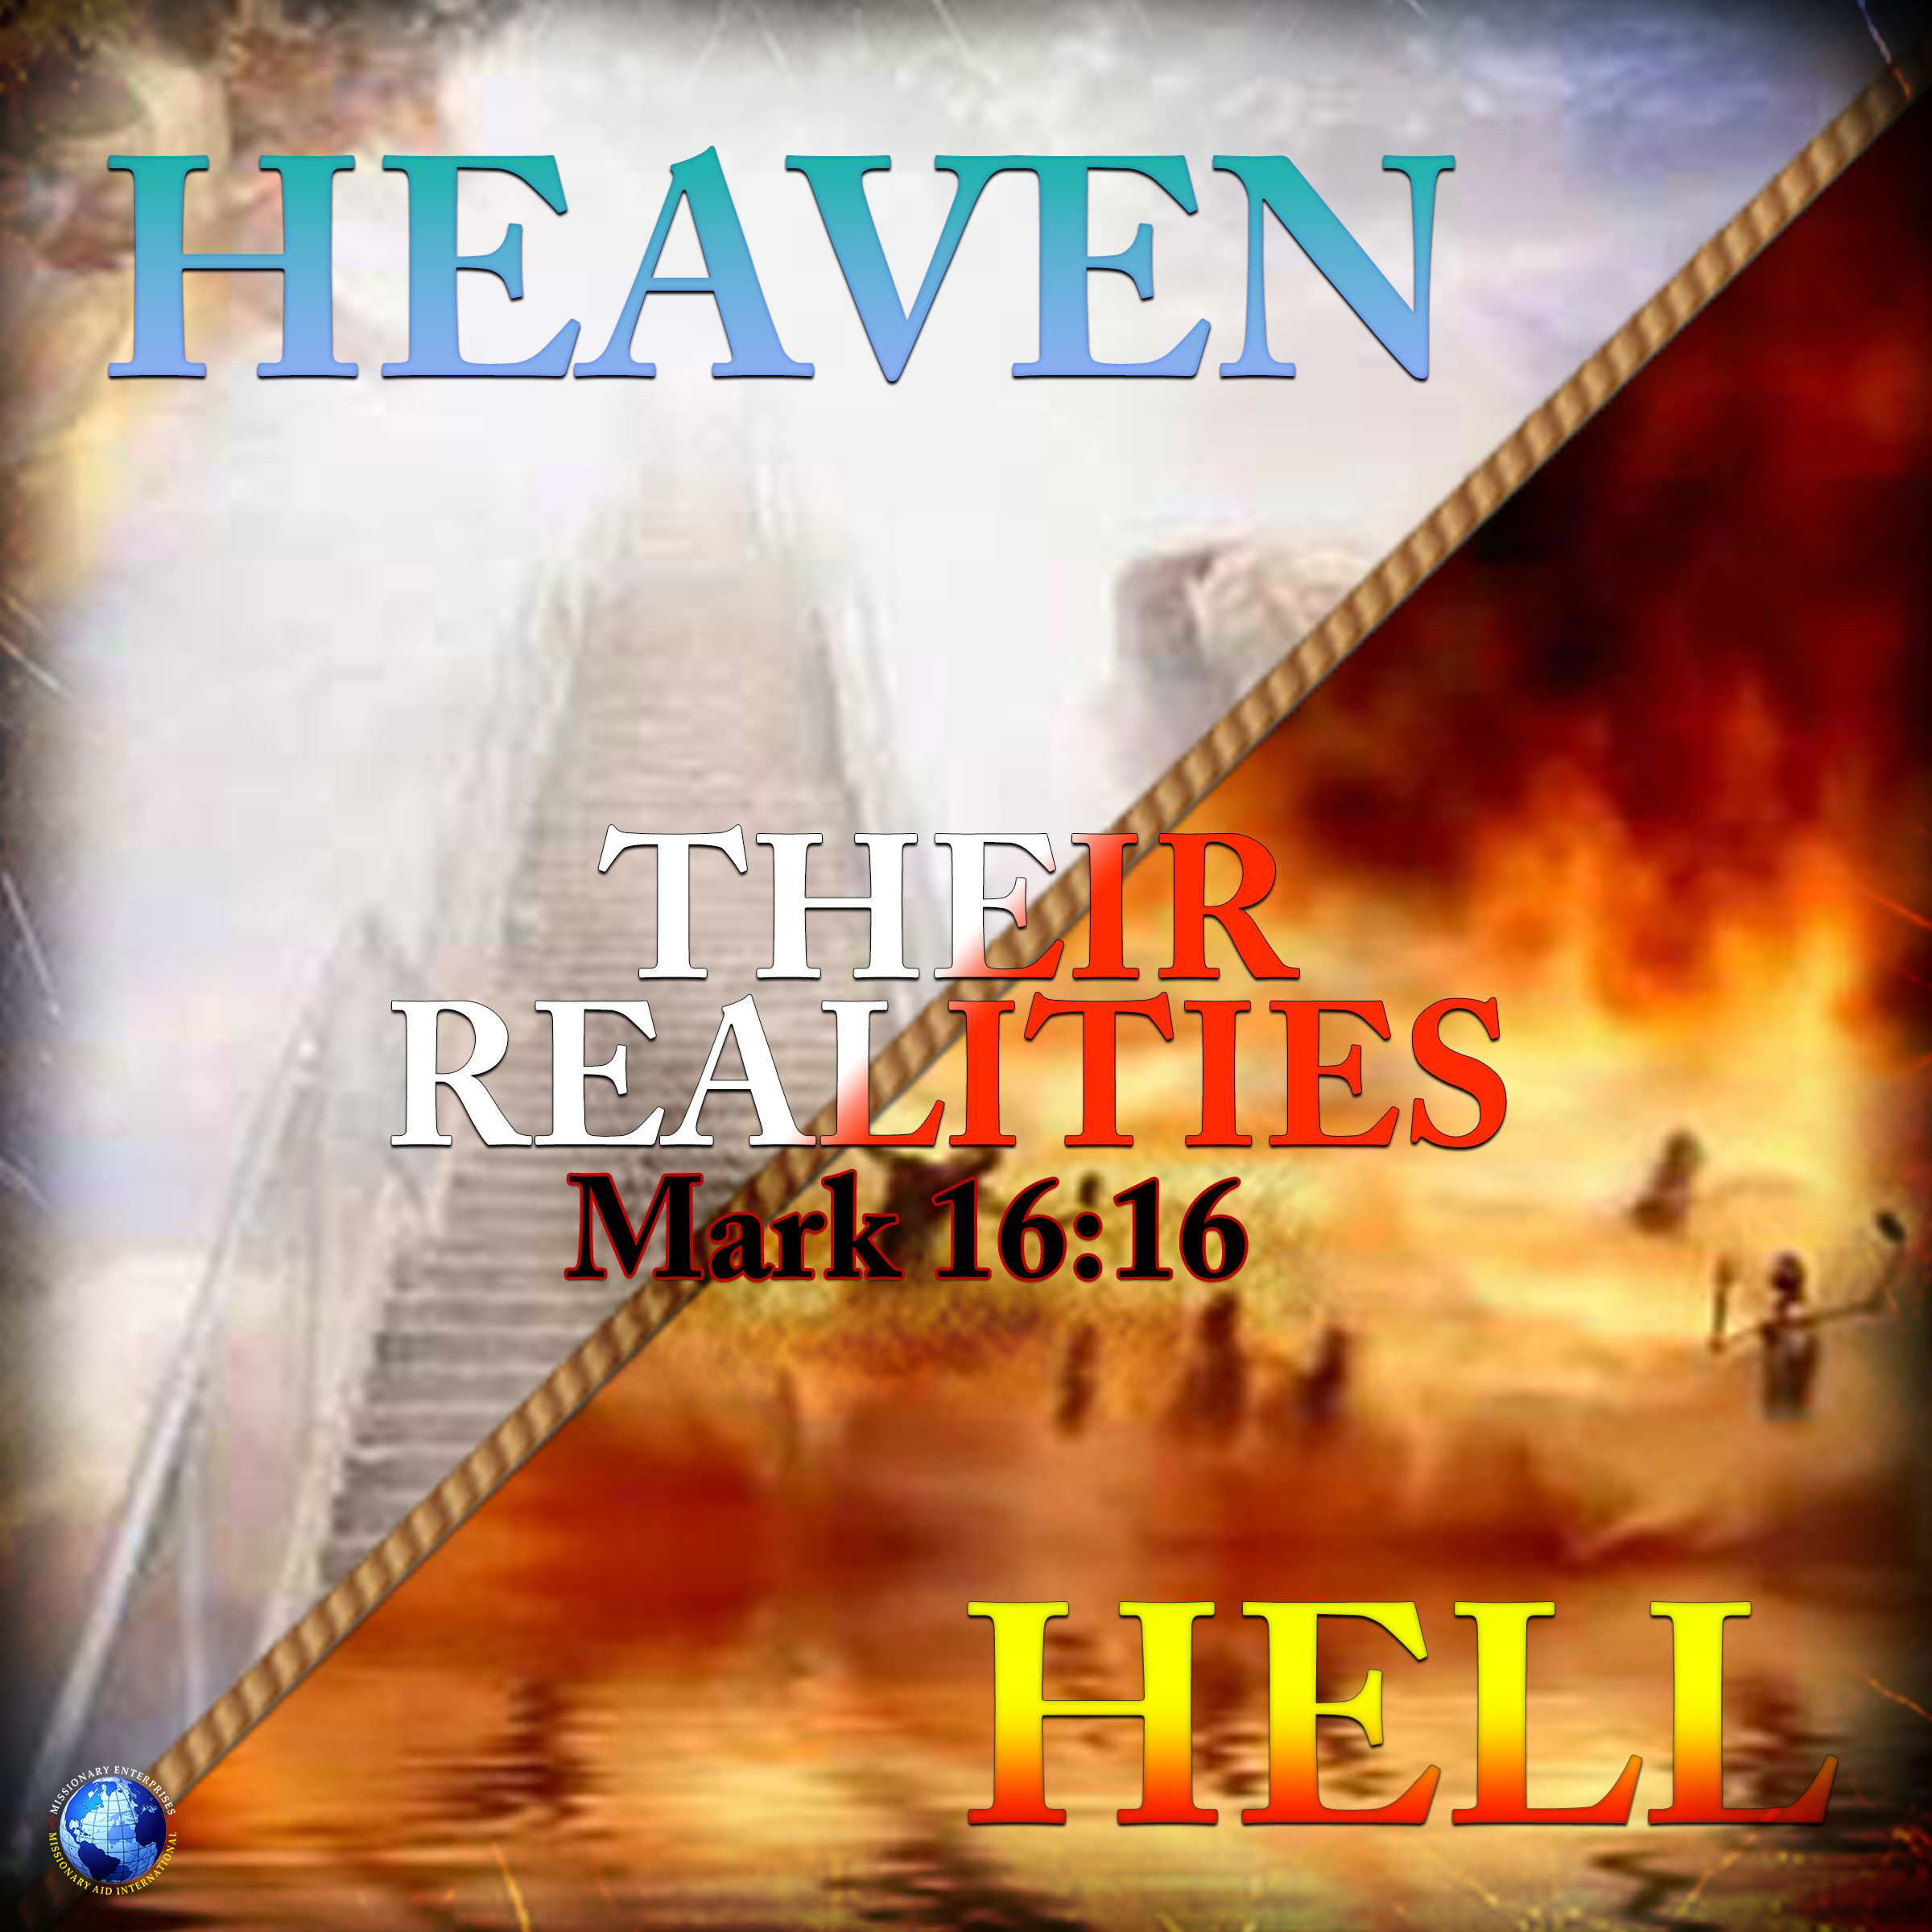 Heaven/Hell: Their realities